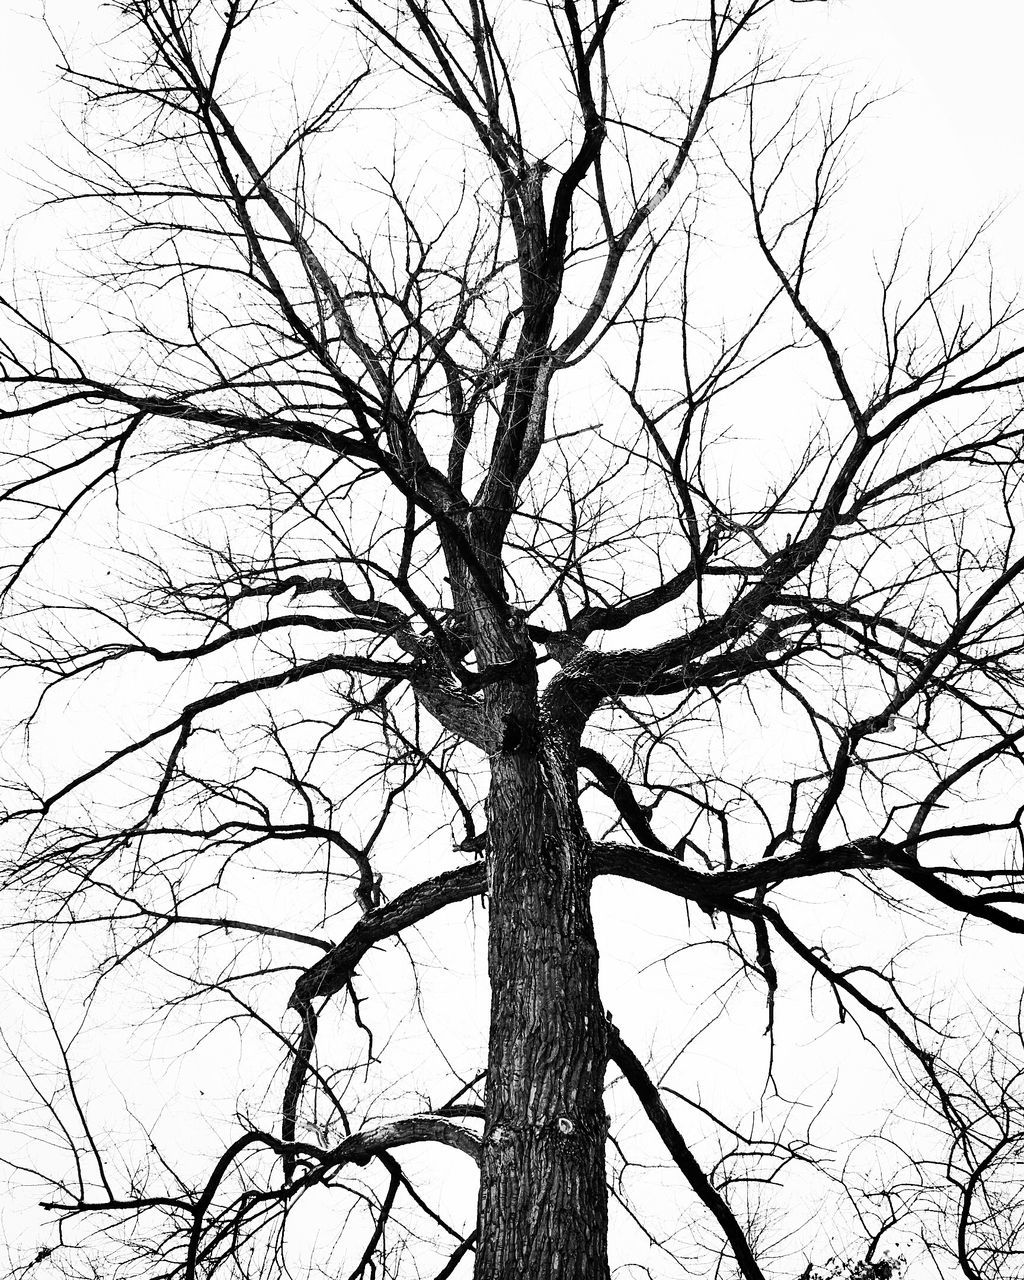 tree, bare tree, branch, sky, low angle view, plant, trunk, tree trunk, no people, tranquility, nature, scenics - nature, day, outdoors, clear sky, beauty in nature, land, dead plant, winter, single tree